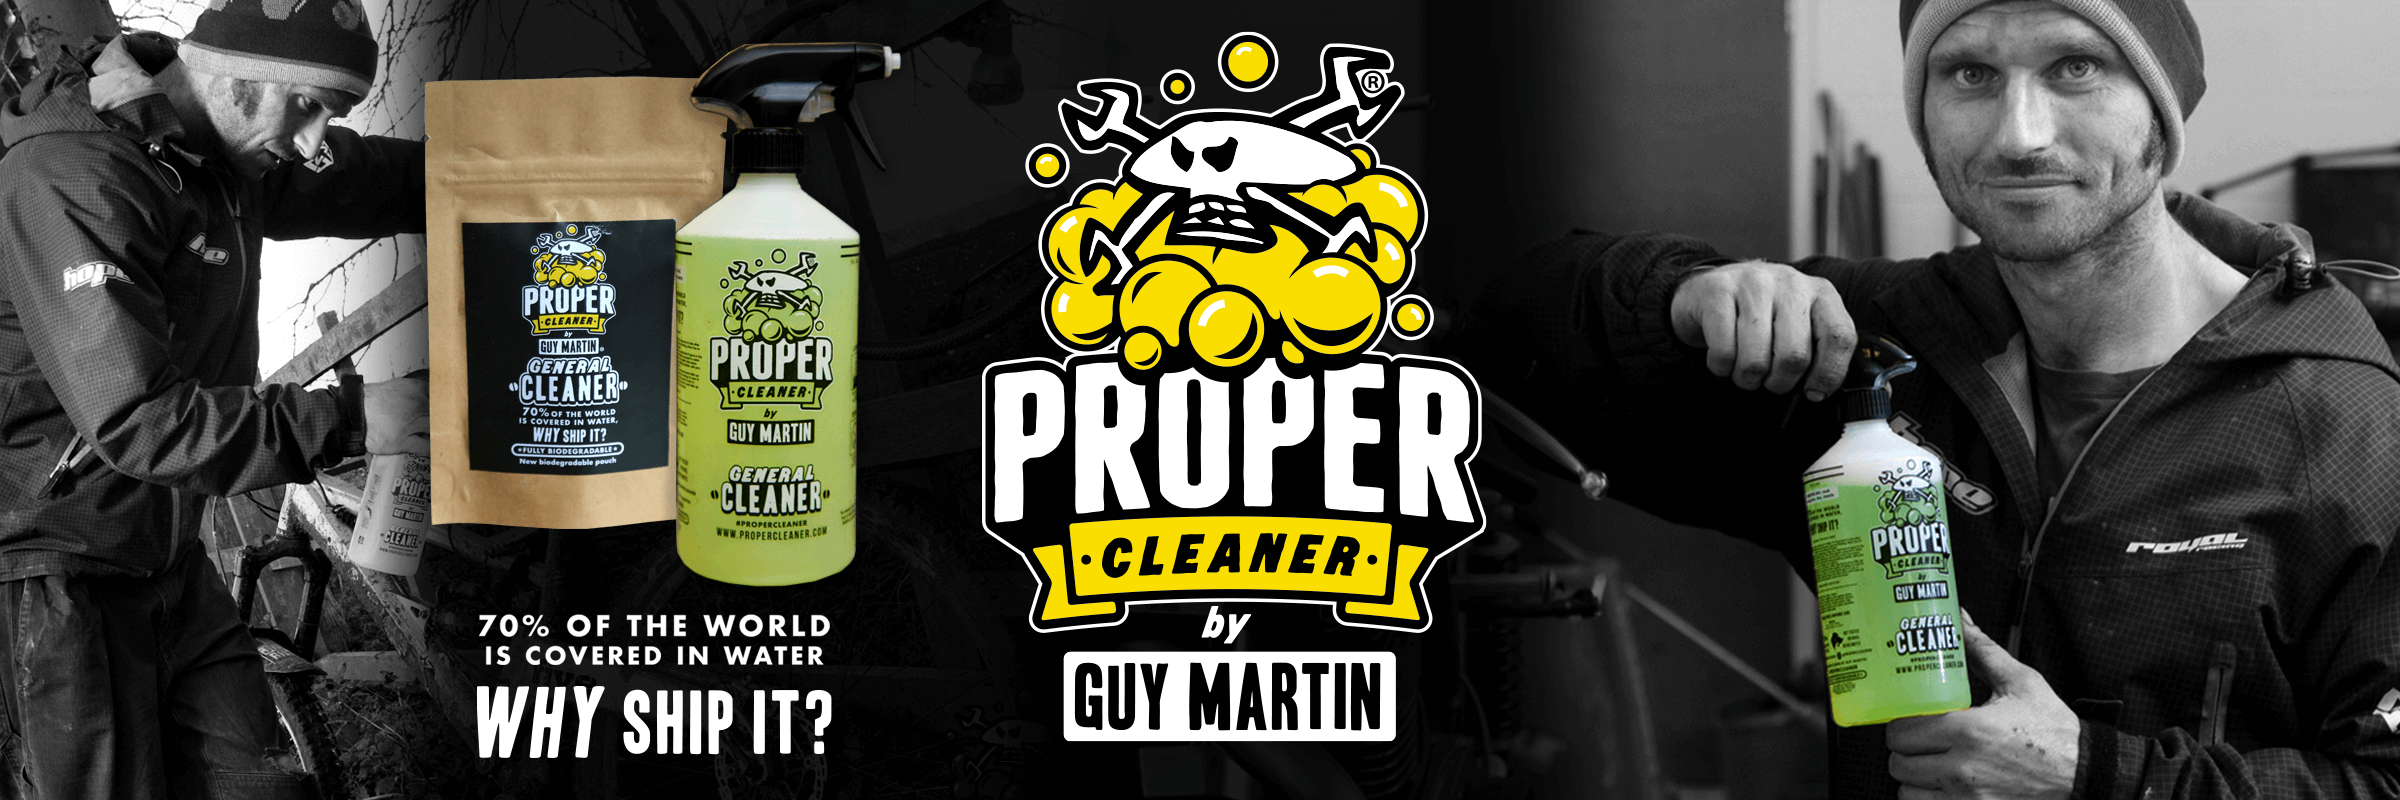 Proper Cleaner by Guy Martin